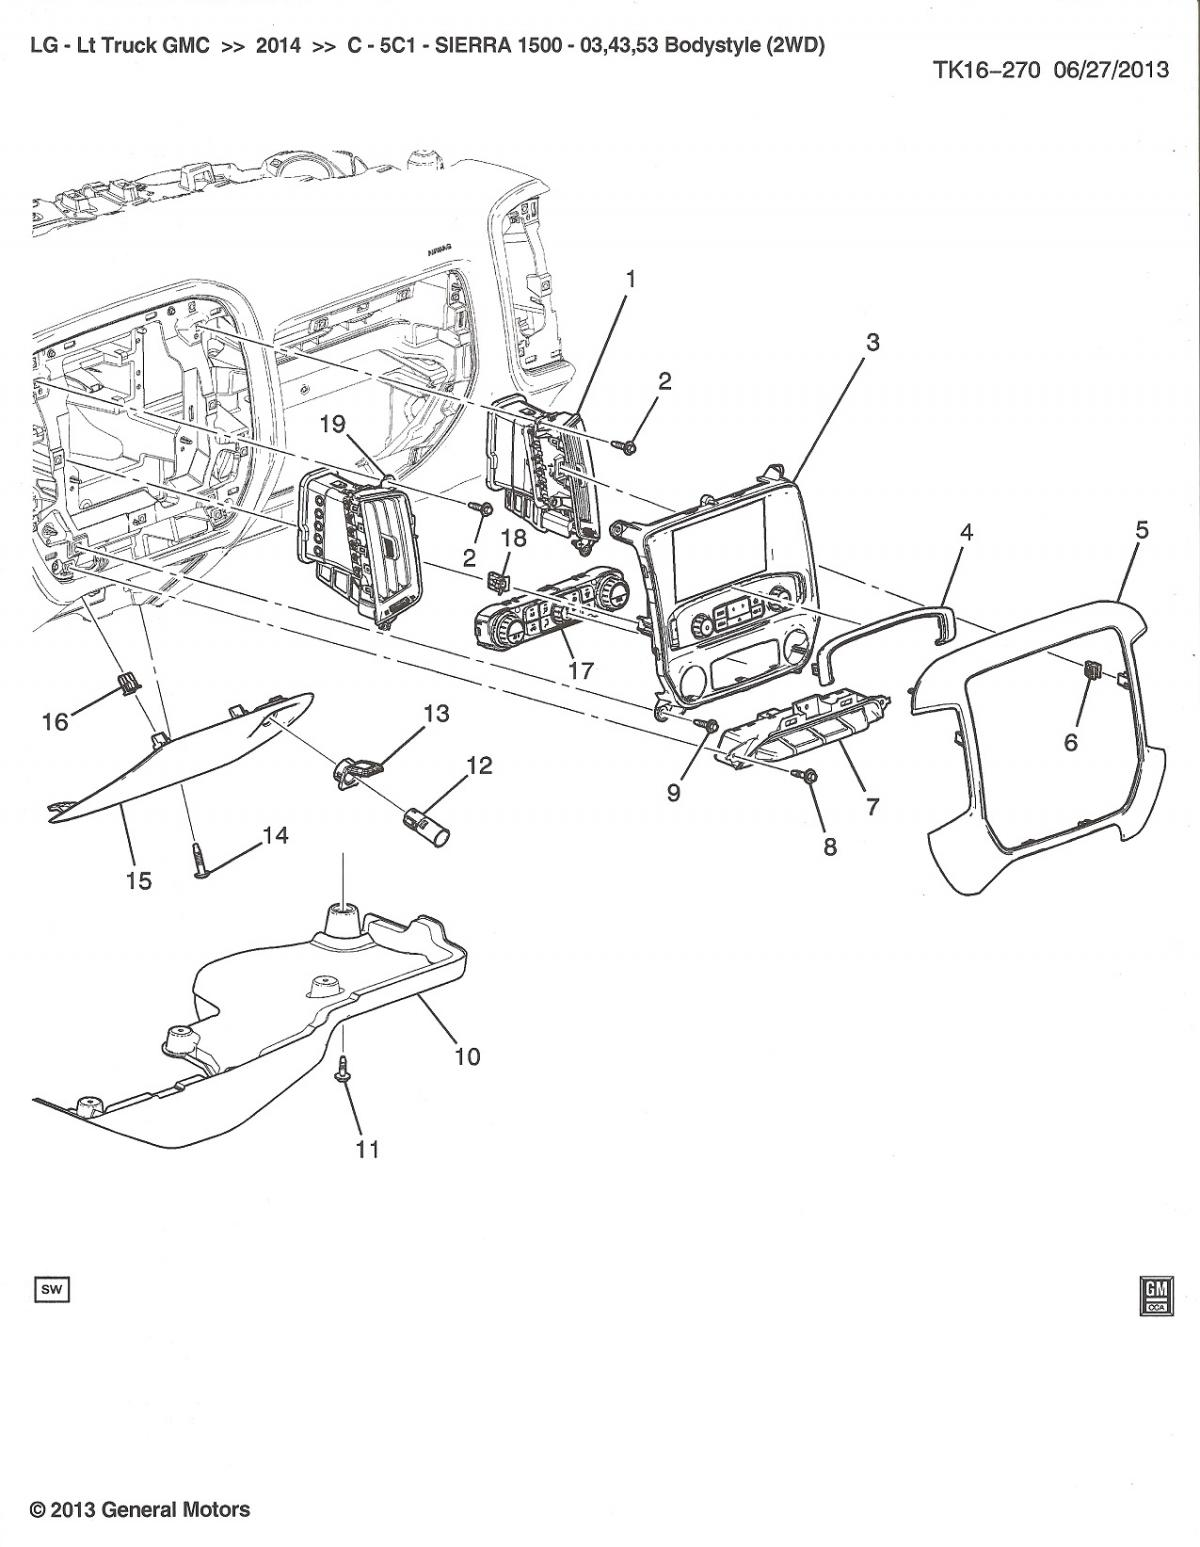 Parts Diagrams Service Manual